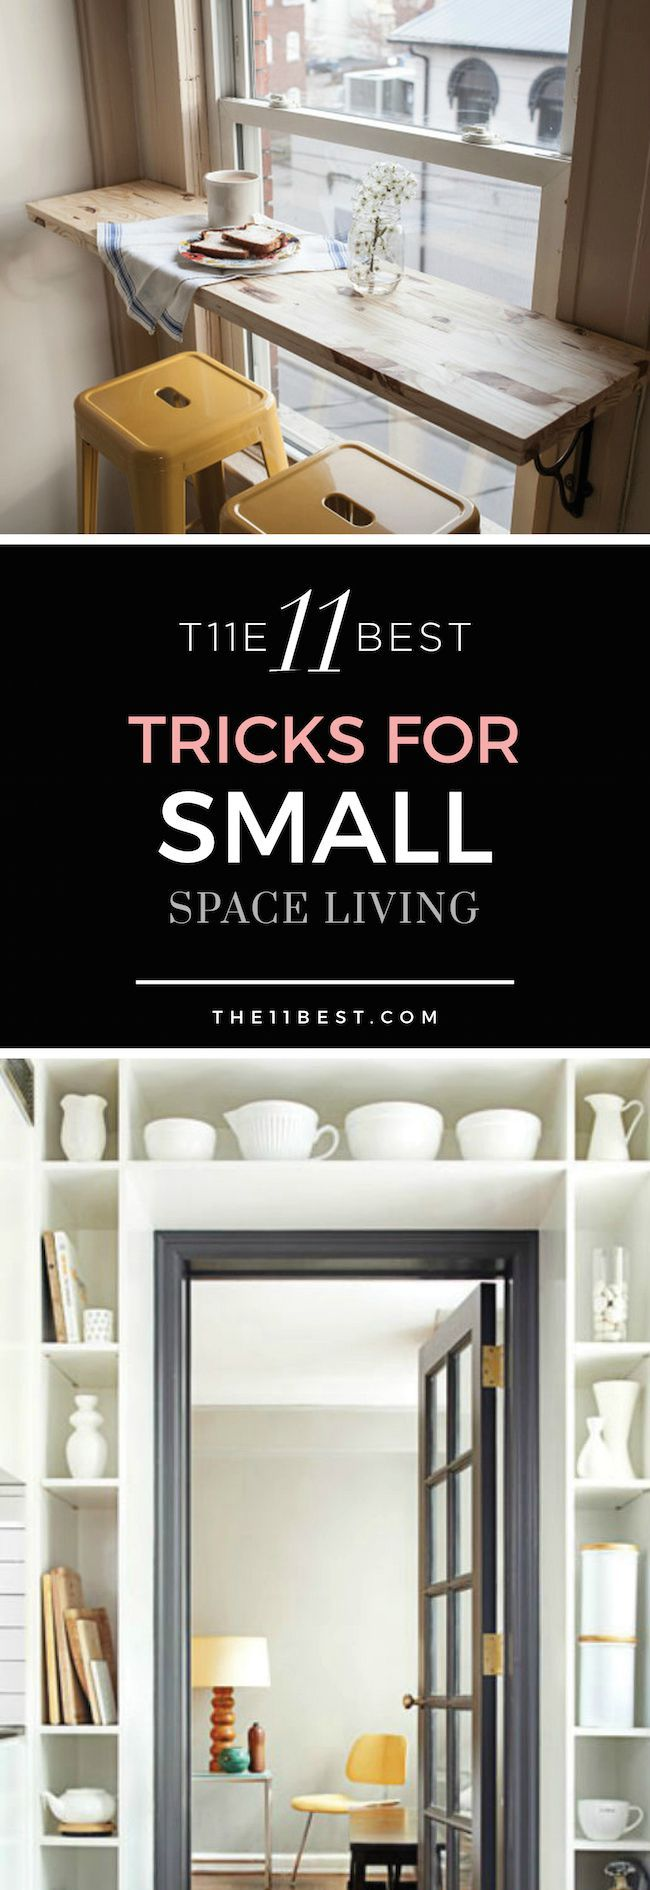 17 best ideas about small flats on pinterest small flat decor reflections apartments and - Kitchen solutions for small spaces pict ...